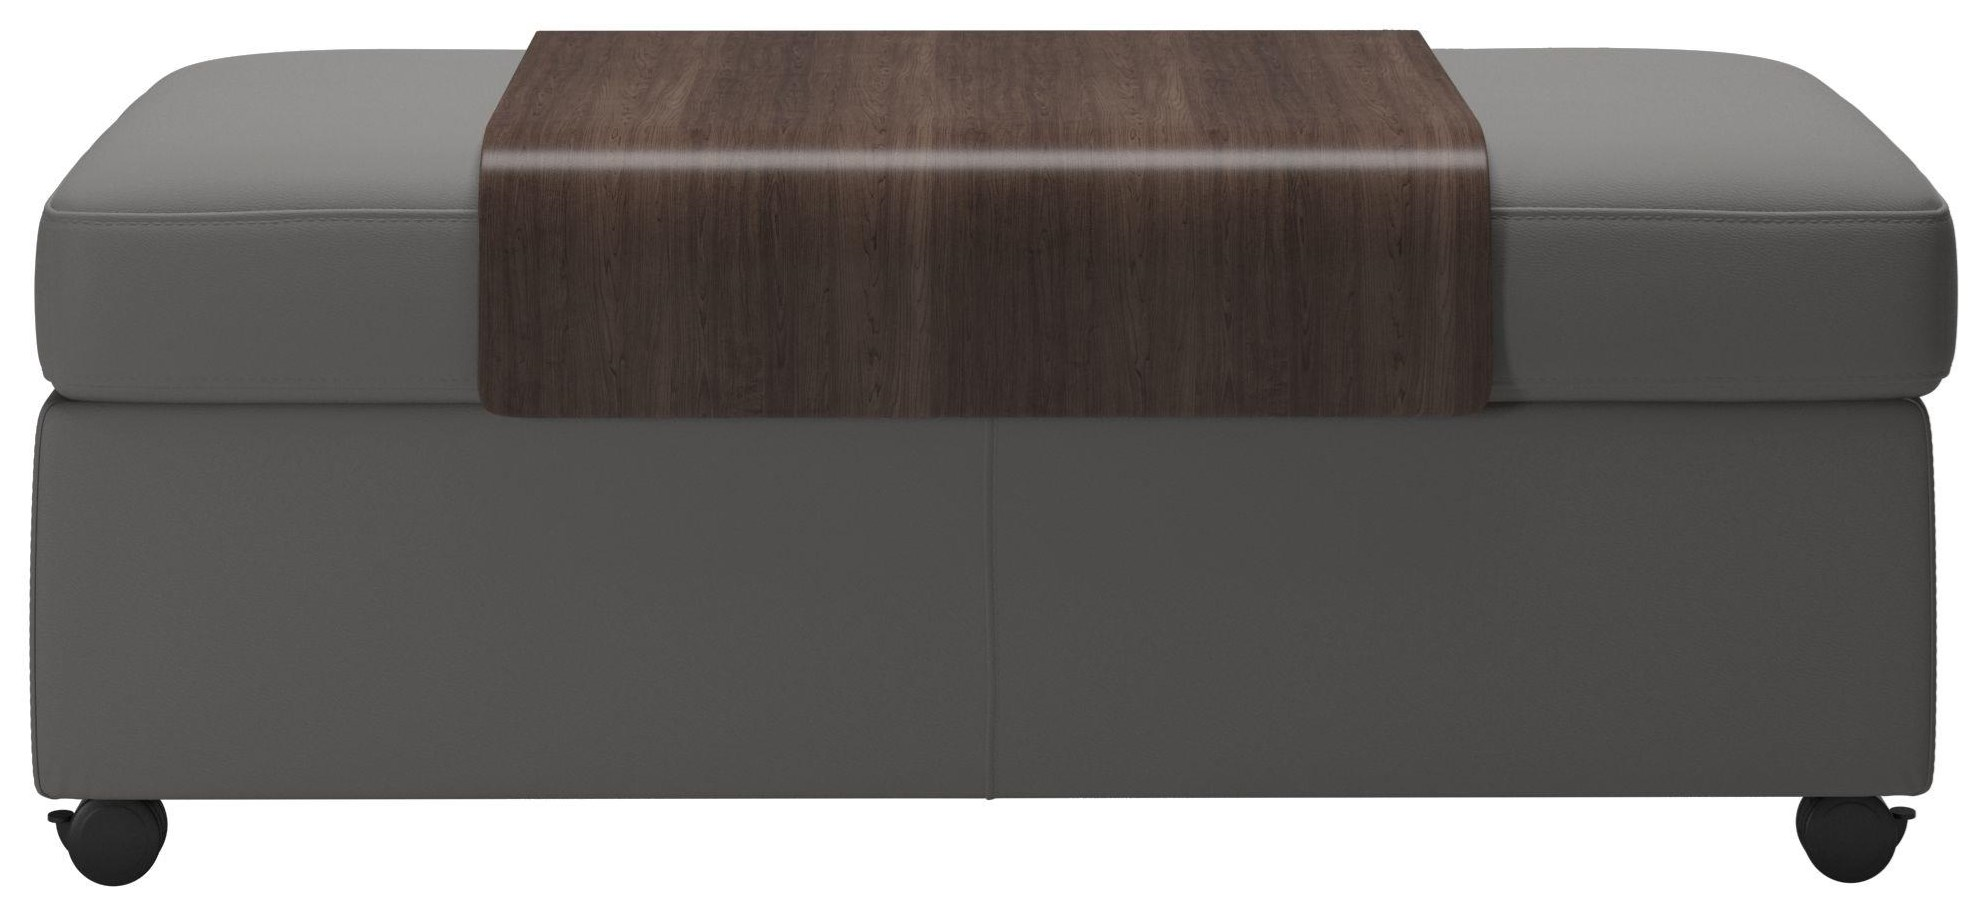 Ottomans Double Ottoman & Table by Stressless at Upper Room Home Furnishings